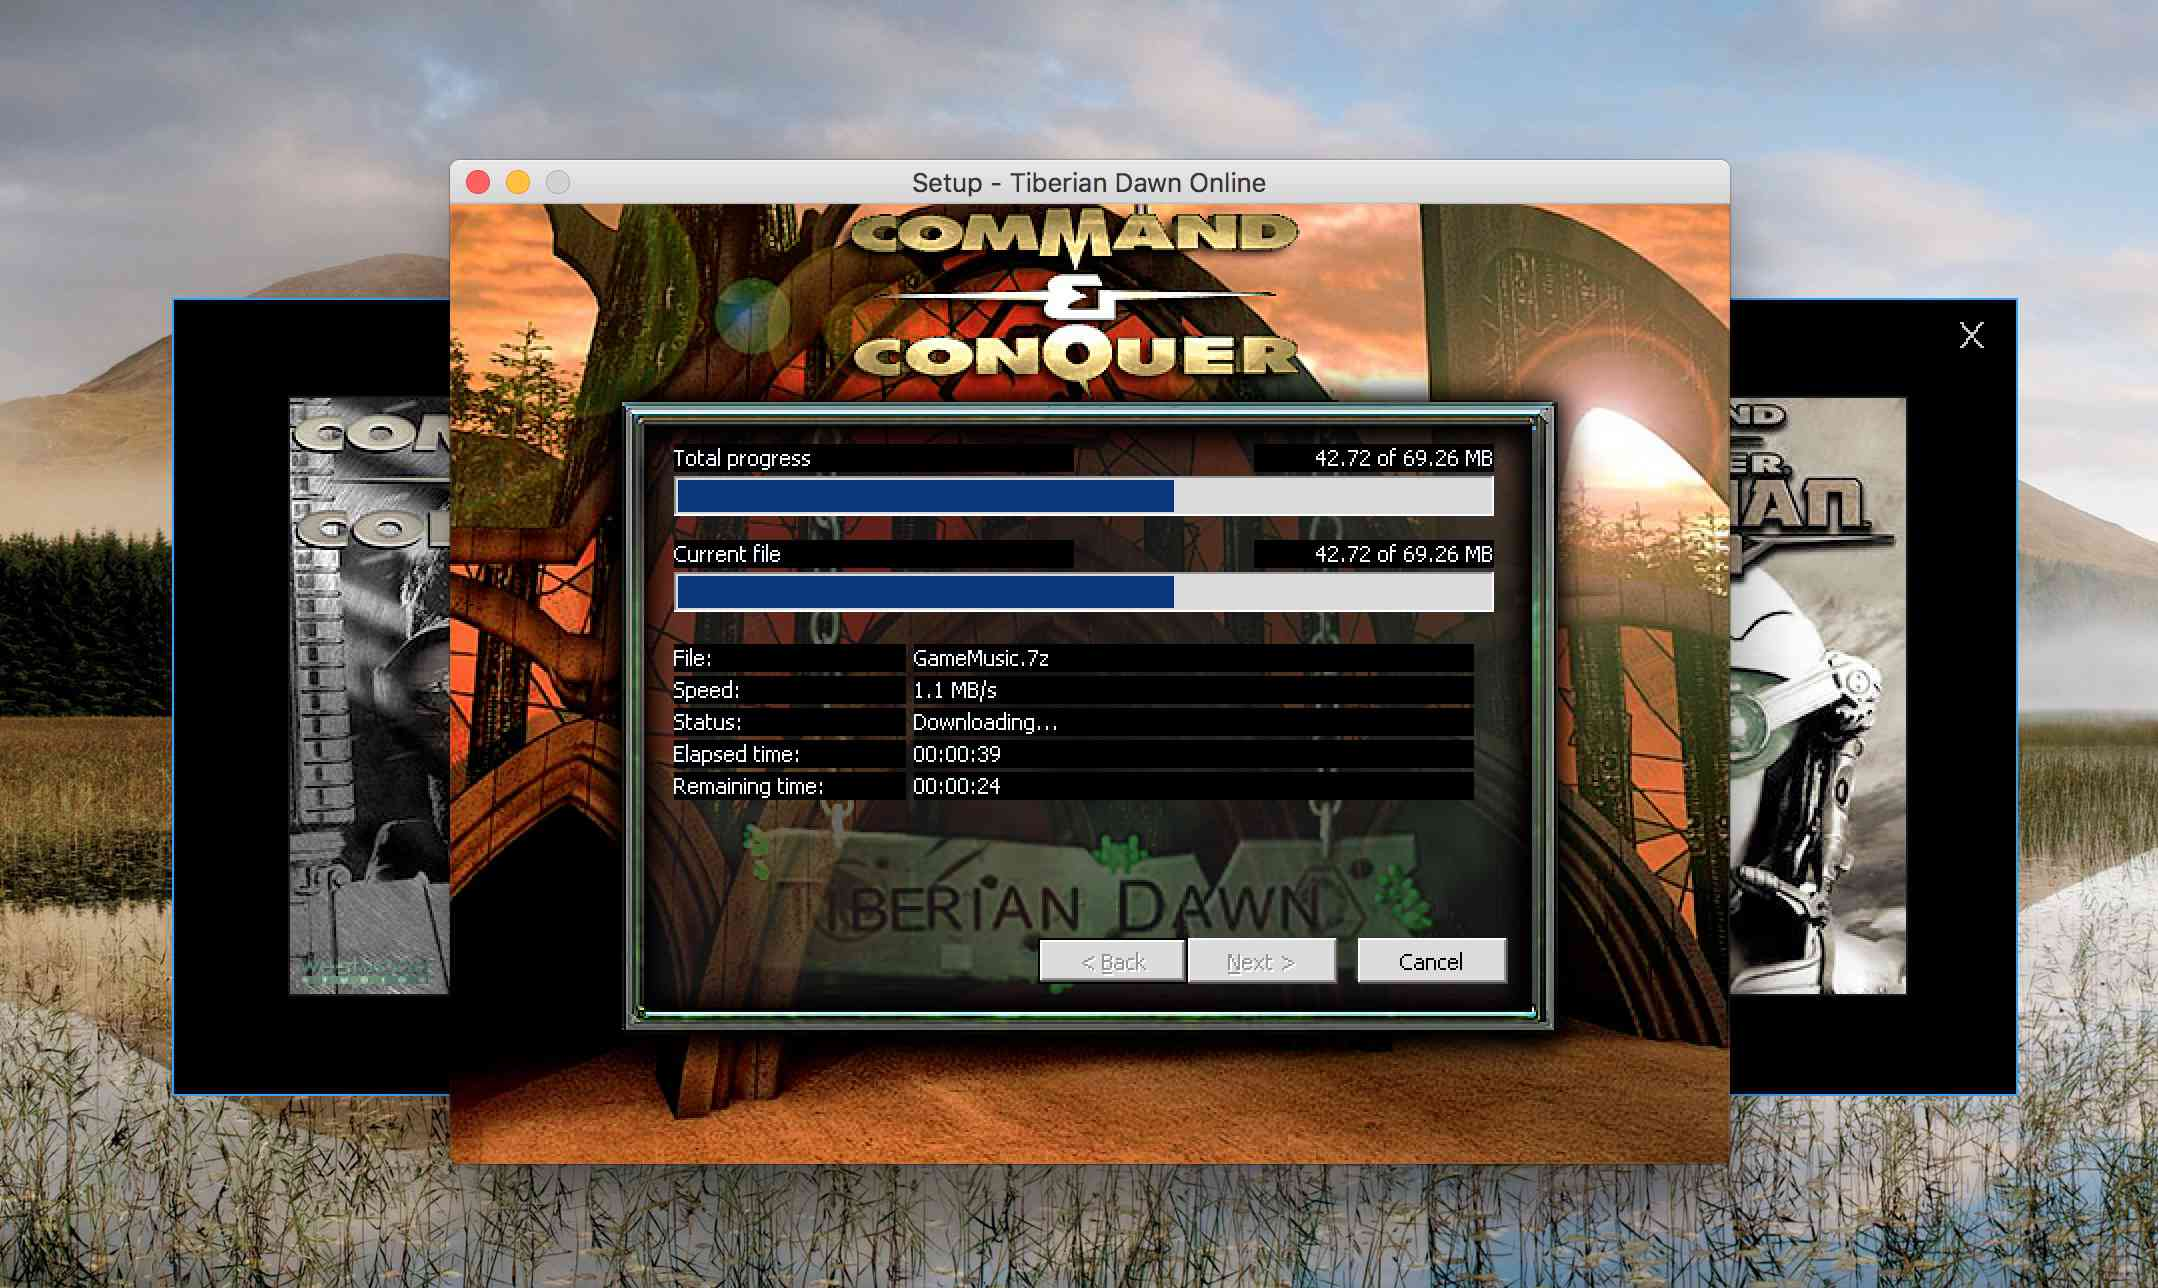 Command & Conquer install screen on macOS